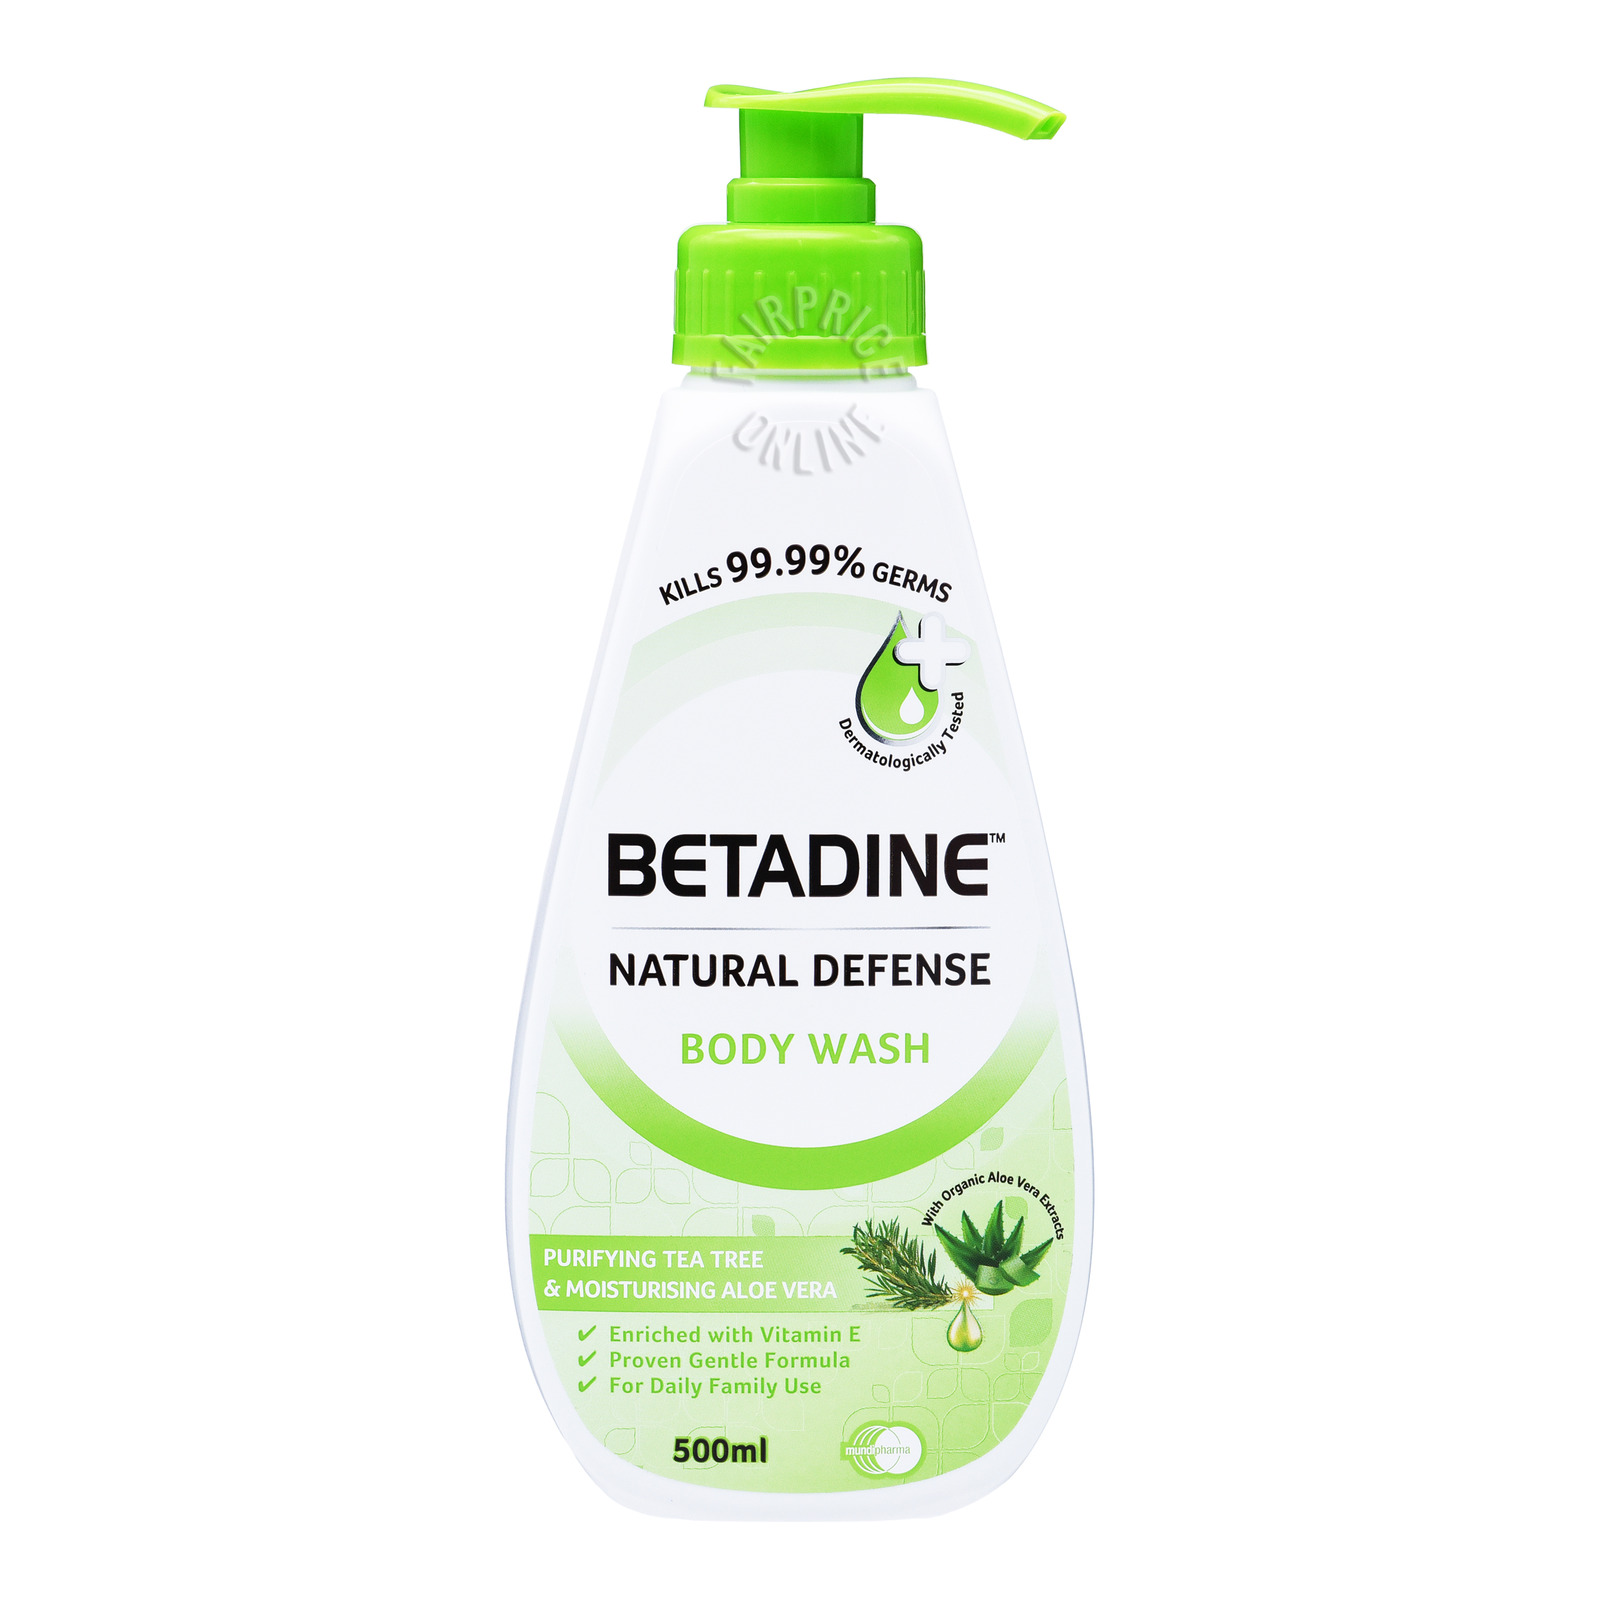 Betadine Natural Defense Body Wash - Tea Tree & Aloe Vera